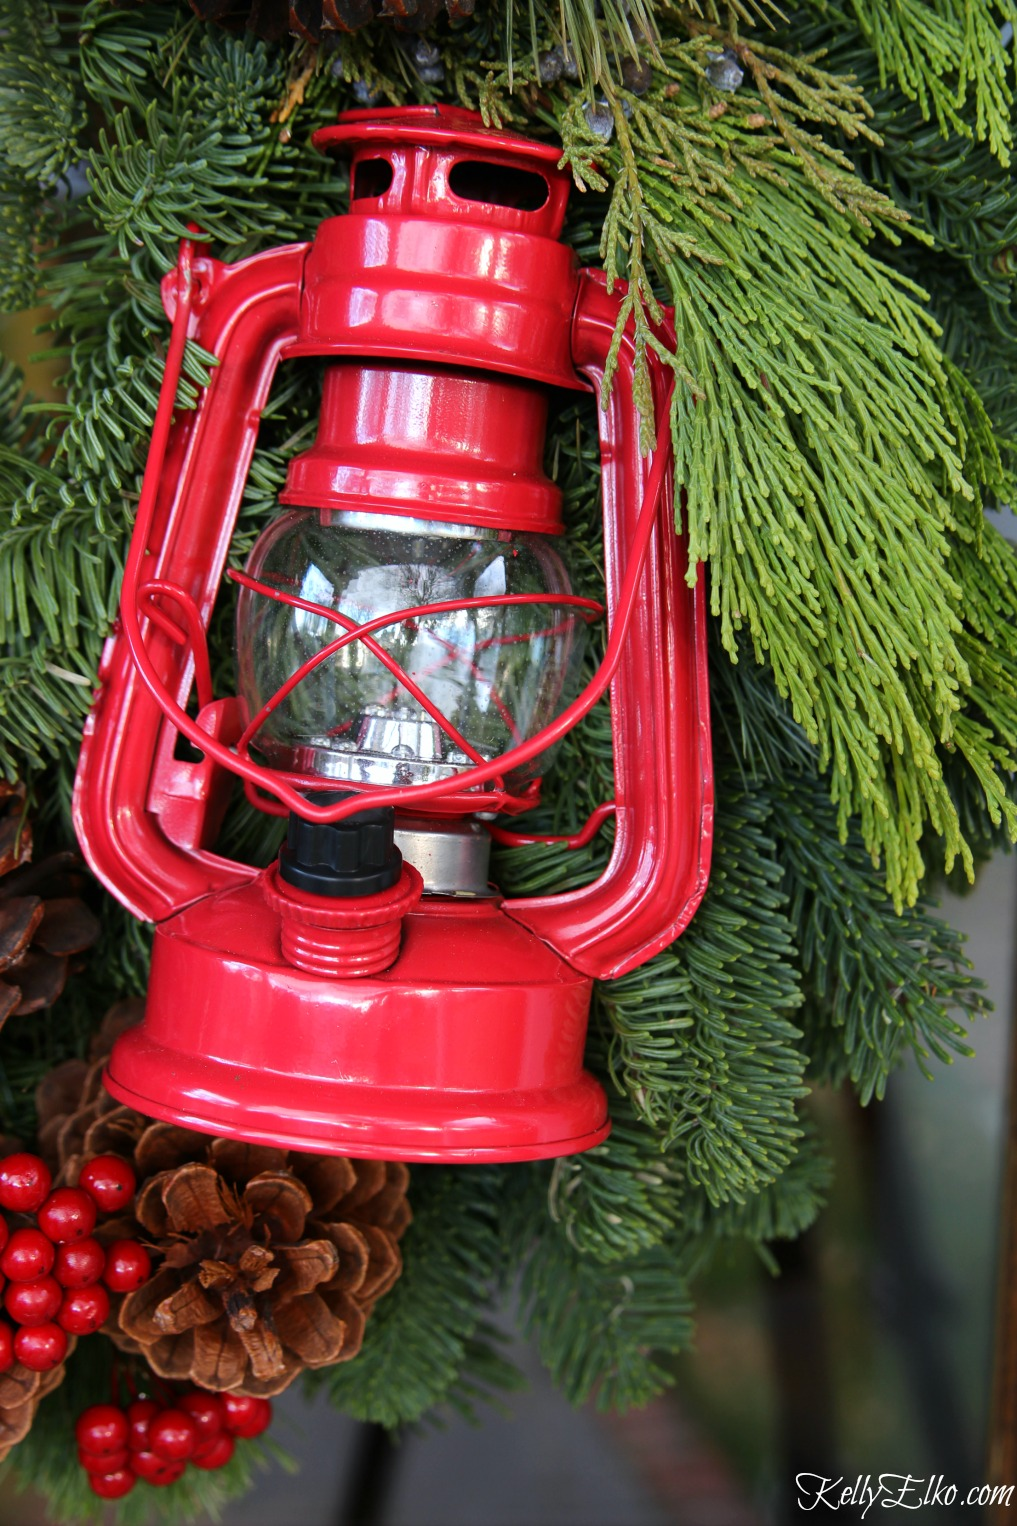 Cute little red lantern on a Christmas wreath kellyelko.com